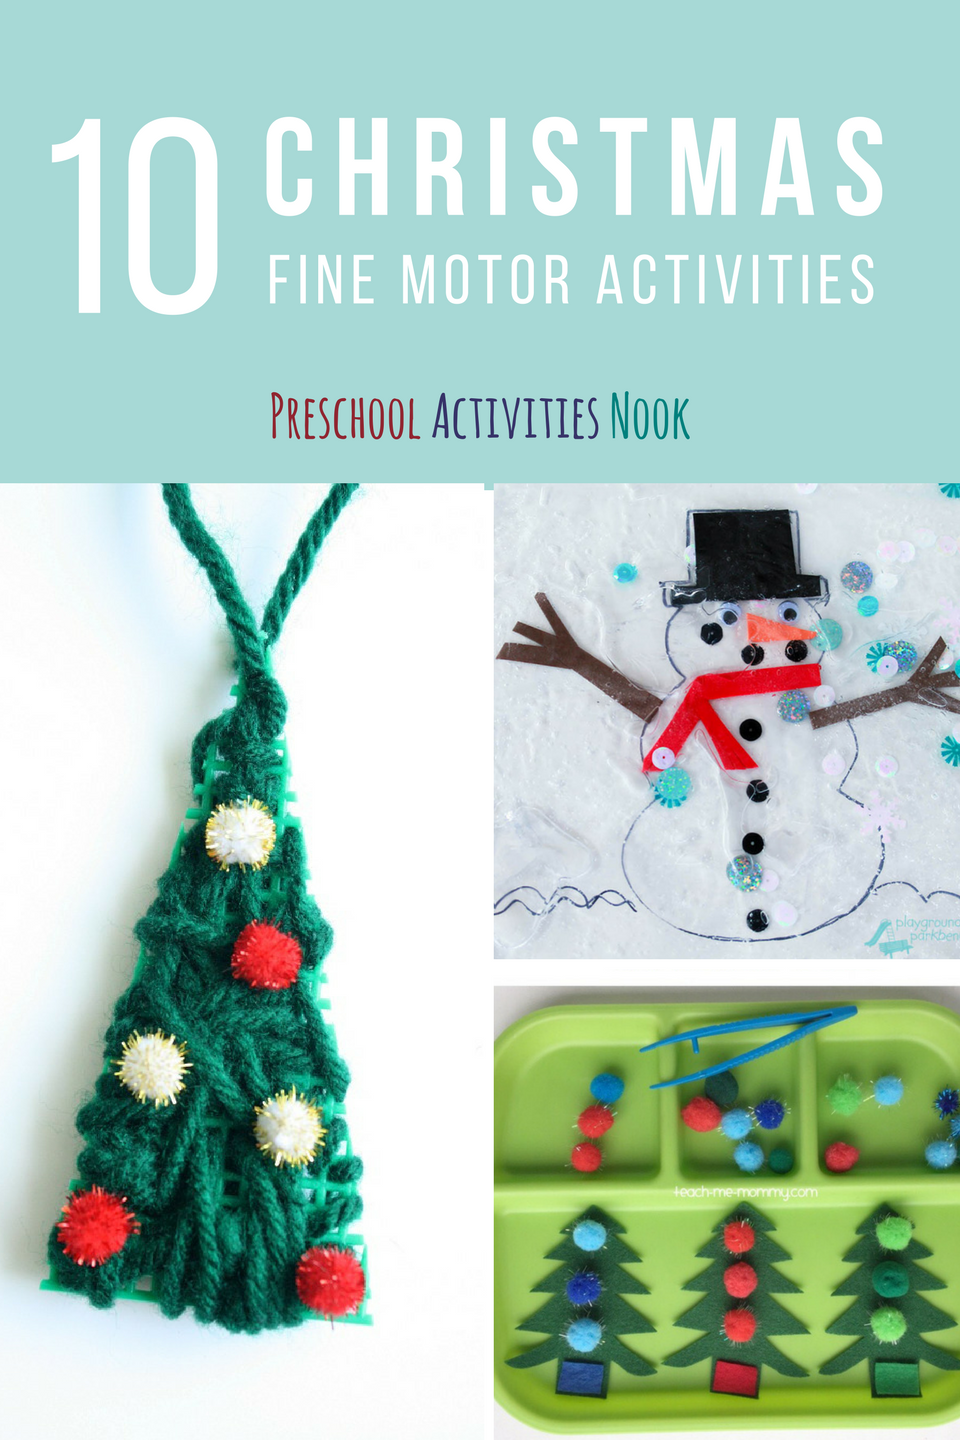 This year try these fine motor activities for Christmas with your preschoolers to help them learn and grow through the holidays.